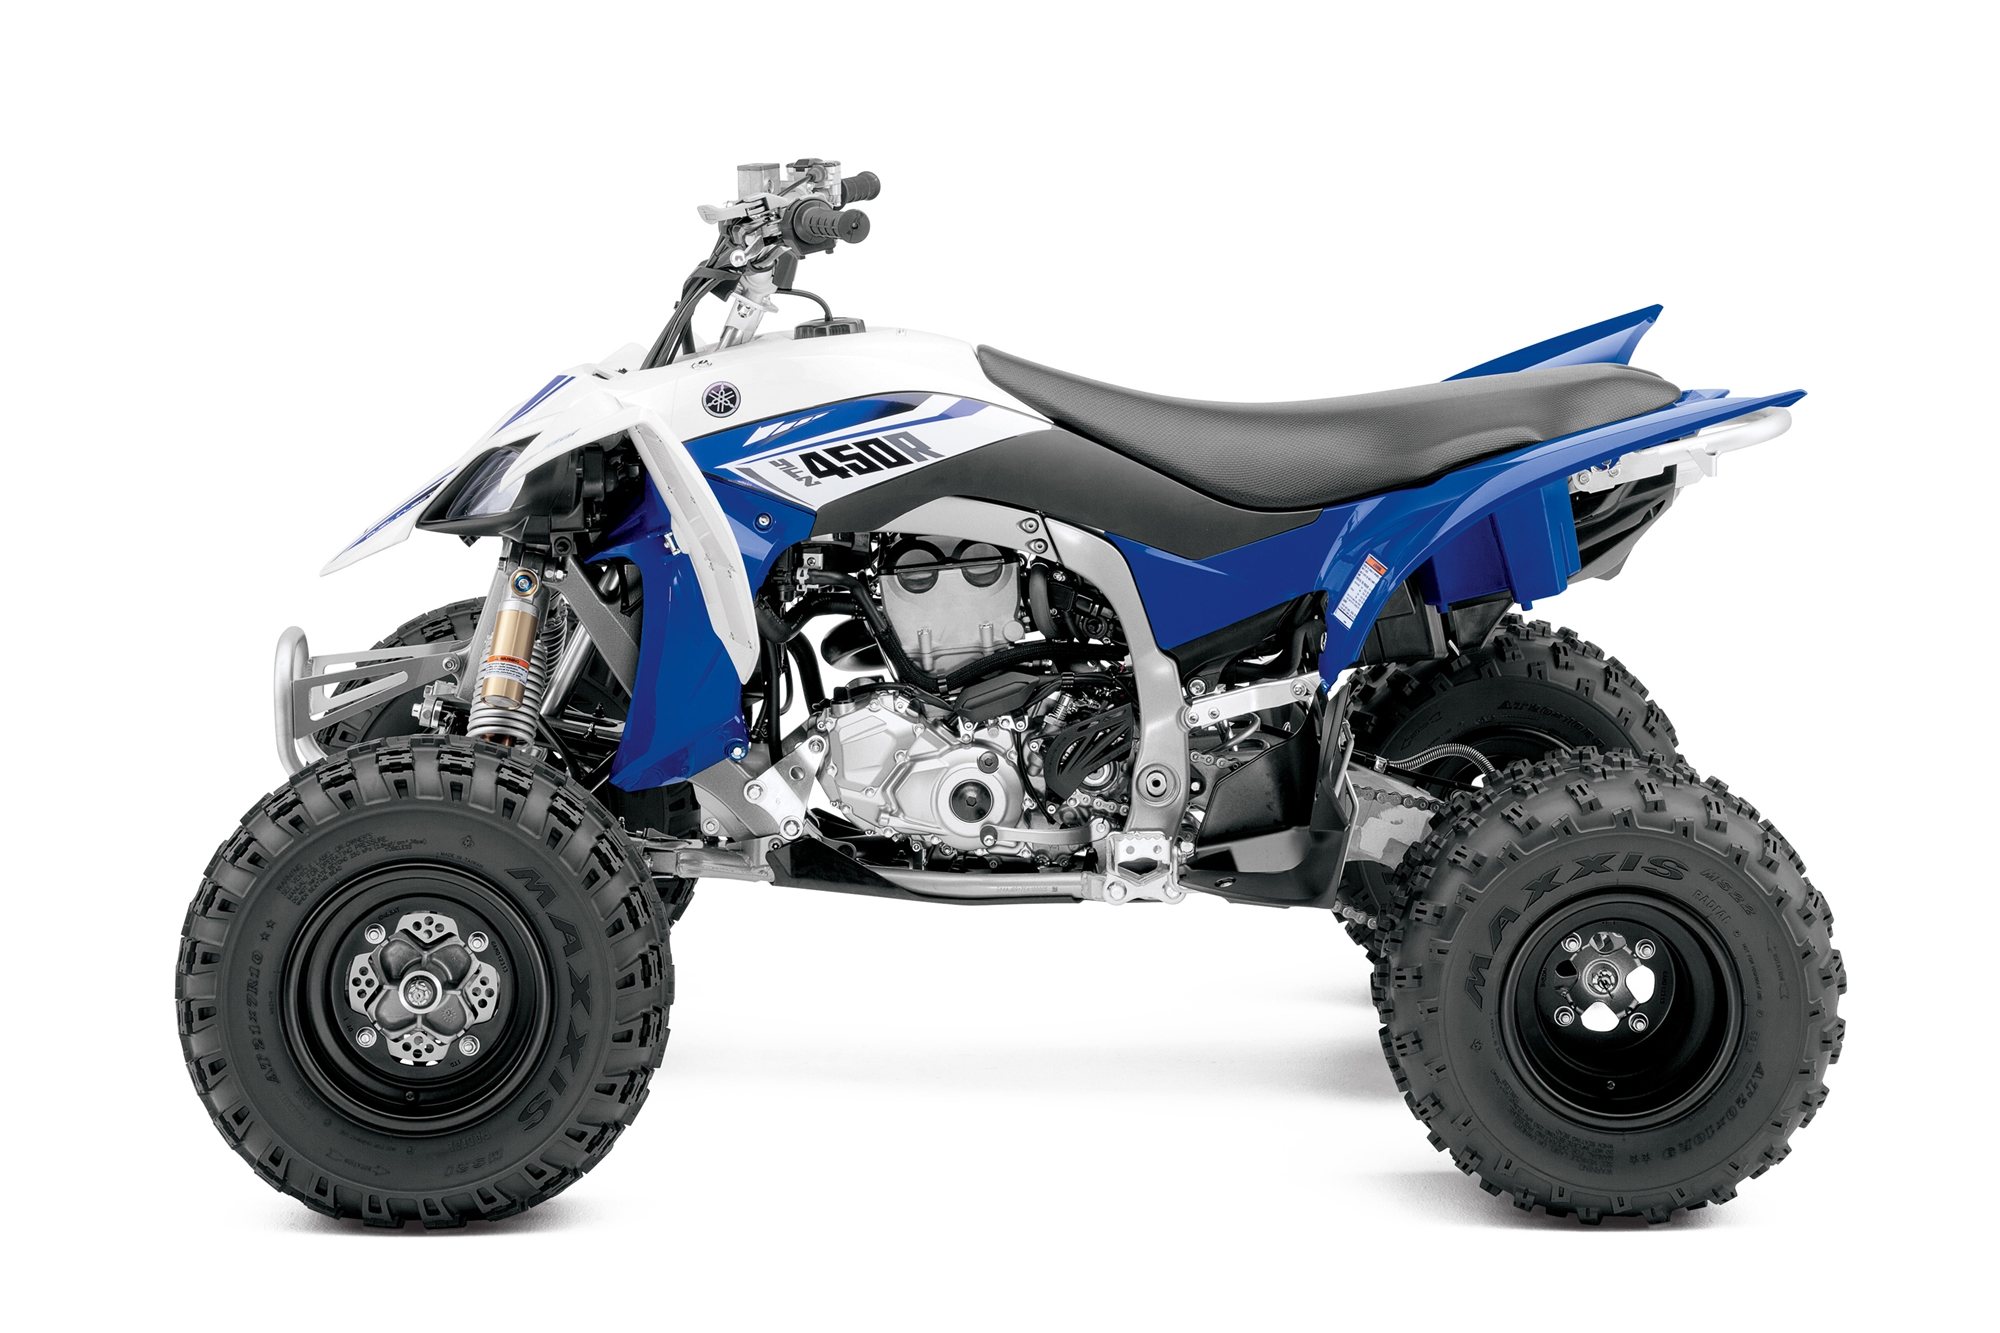 Yfz450 For Sale >> 2014 Yamaha YFZ450R Brings Slipper Clutch to the ATV World ...